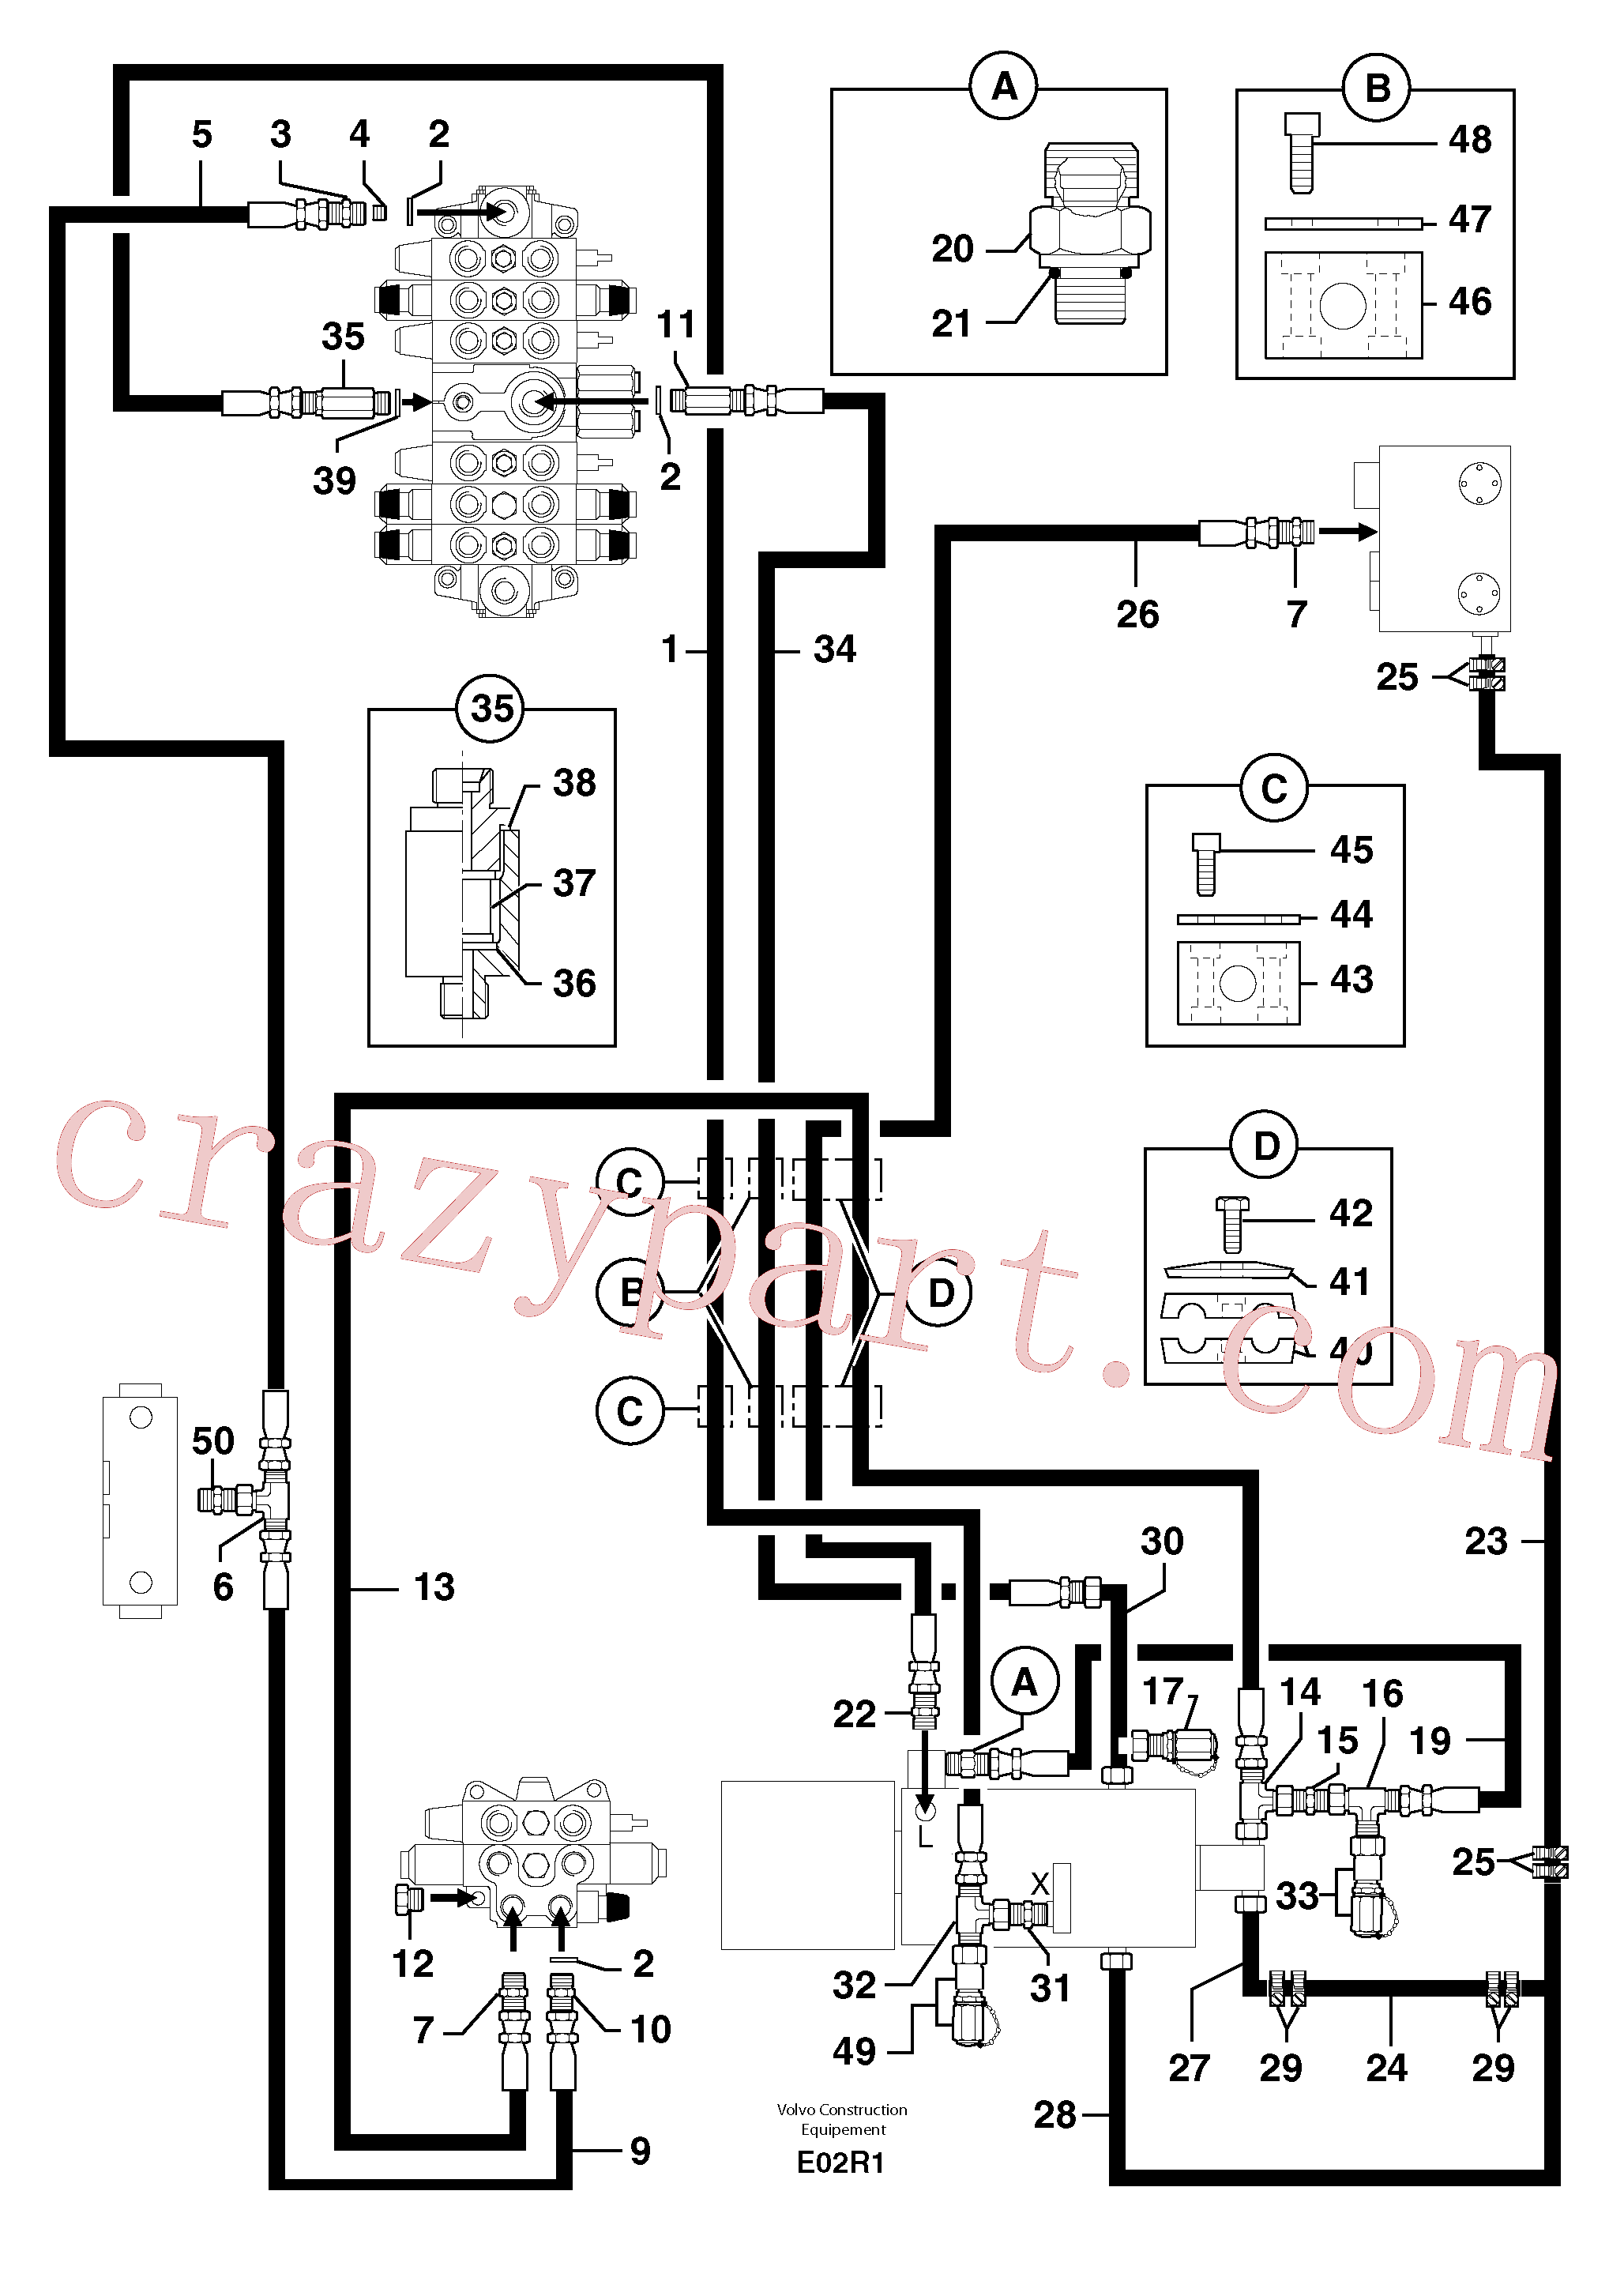 PJ4770471 for Volvo Attachments supply and return circuit(E02R1 assembly)